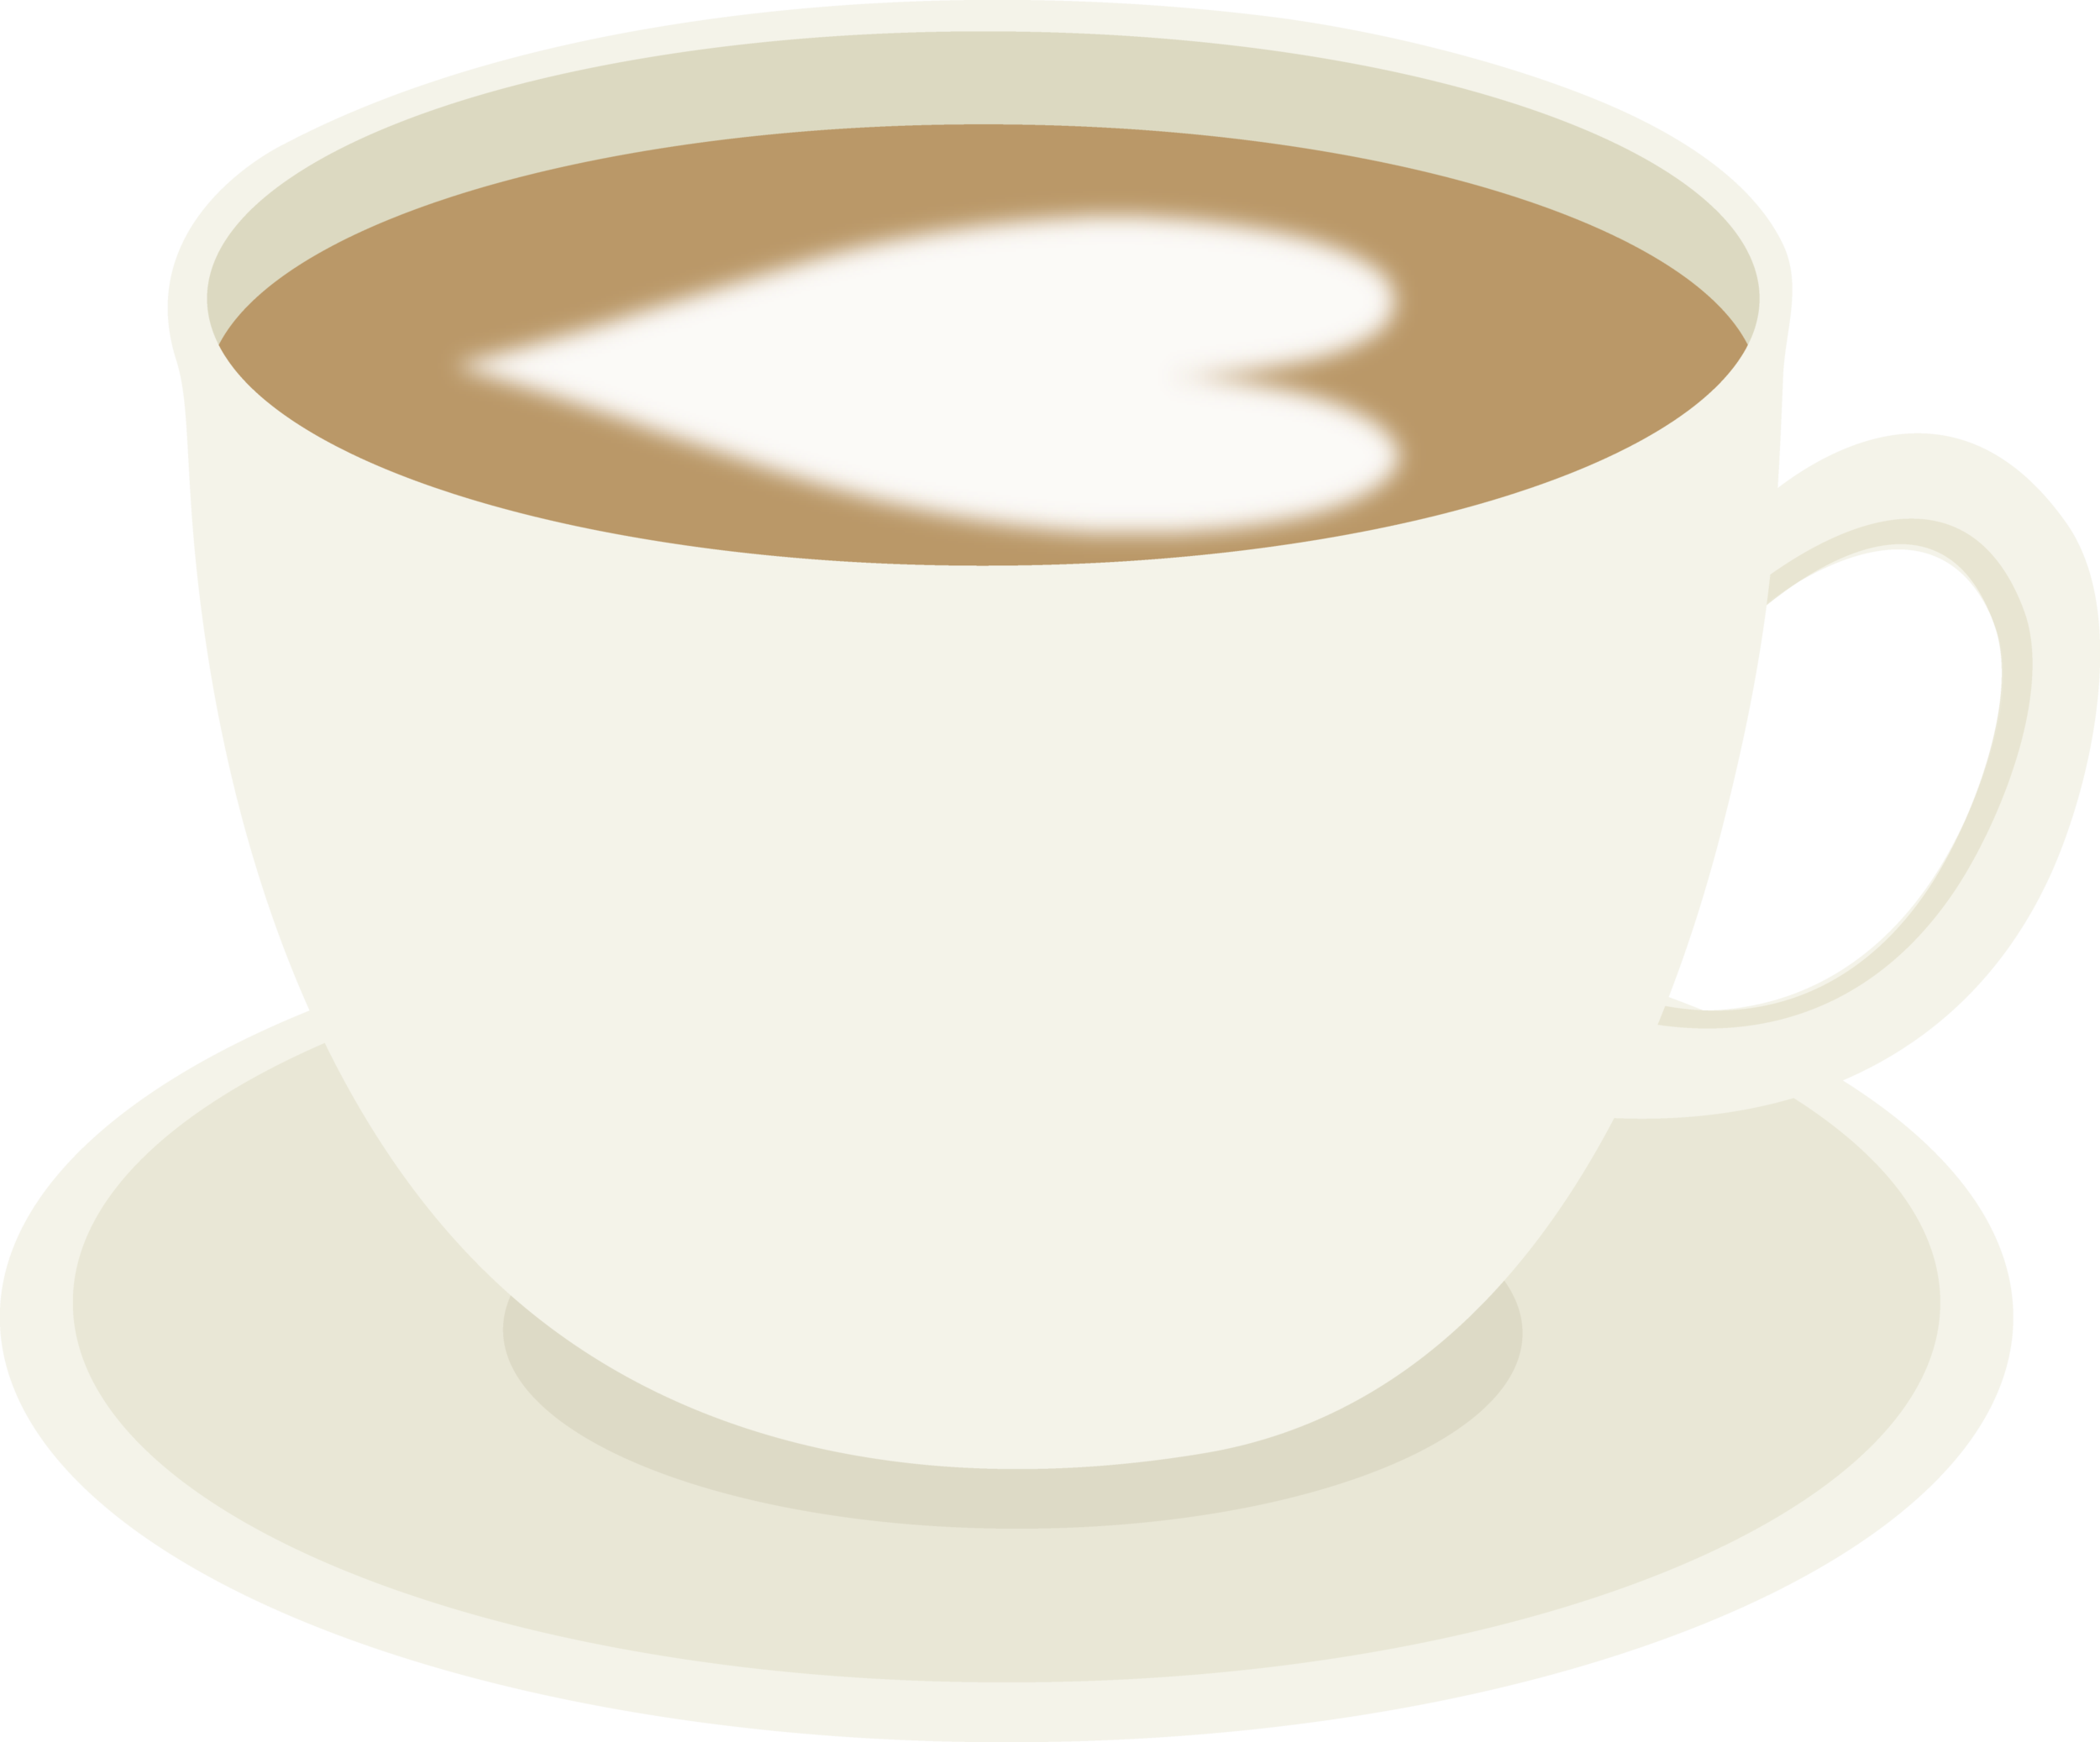 cup_coffee_cream_heart_2.png